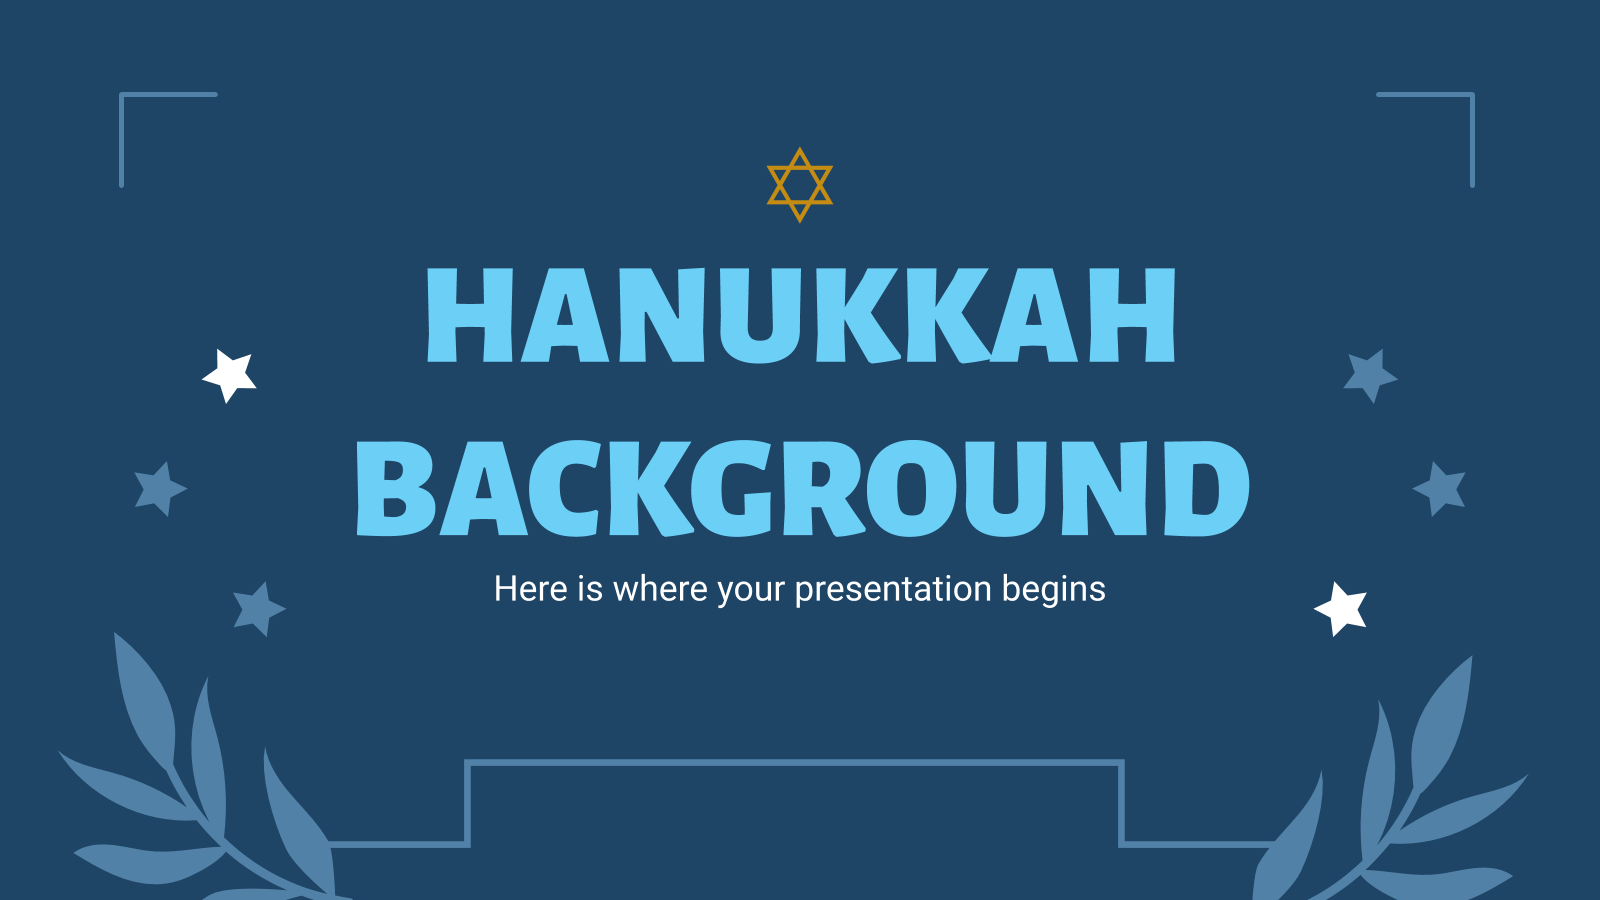 Hannukah Background presentation template